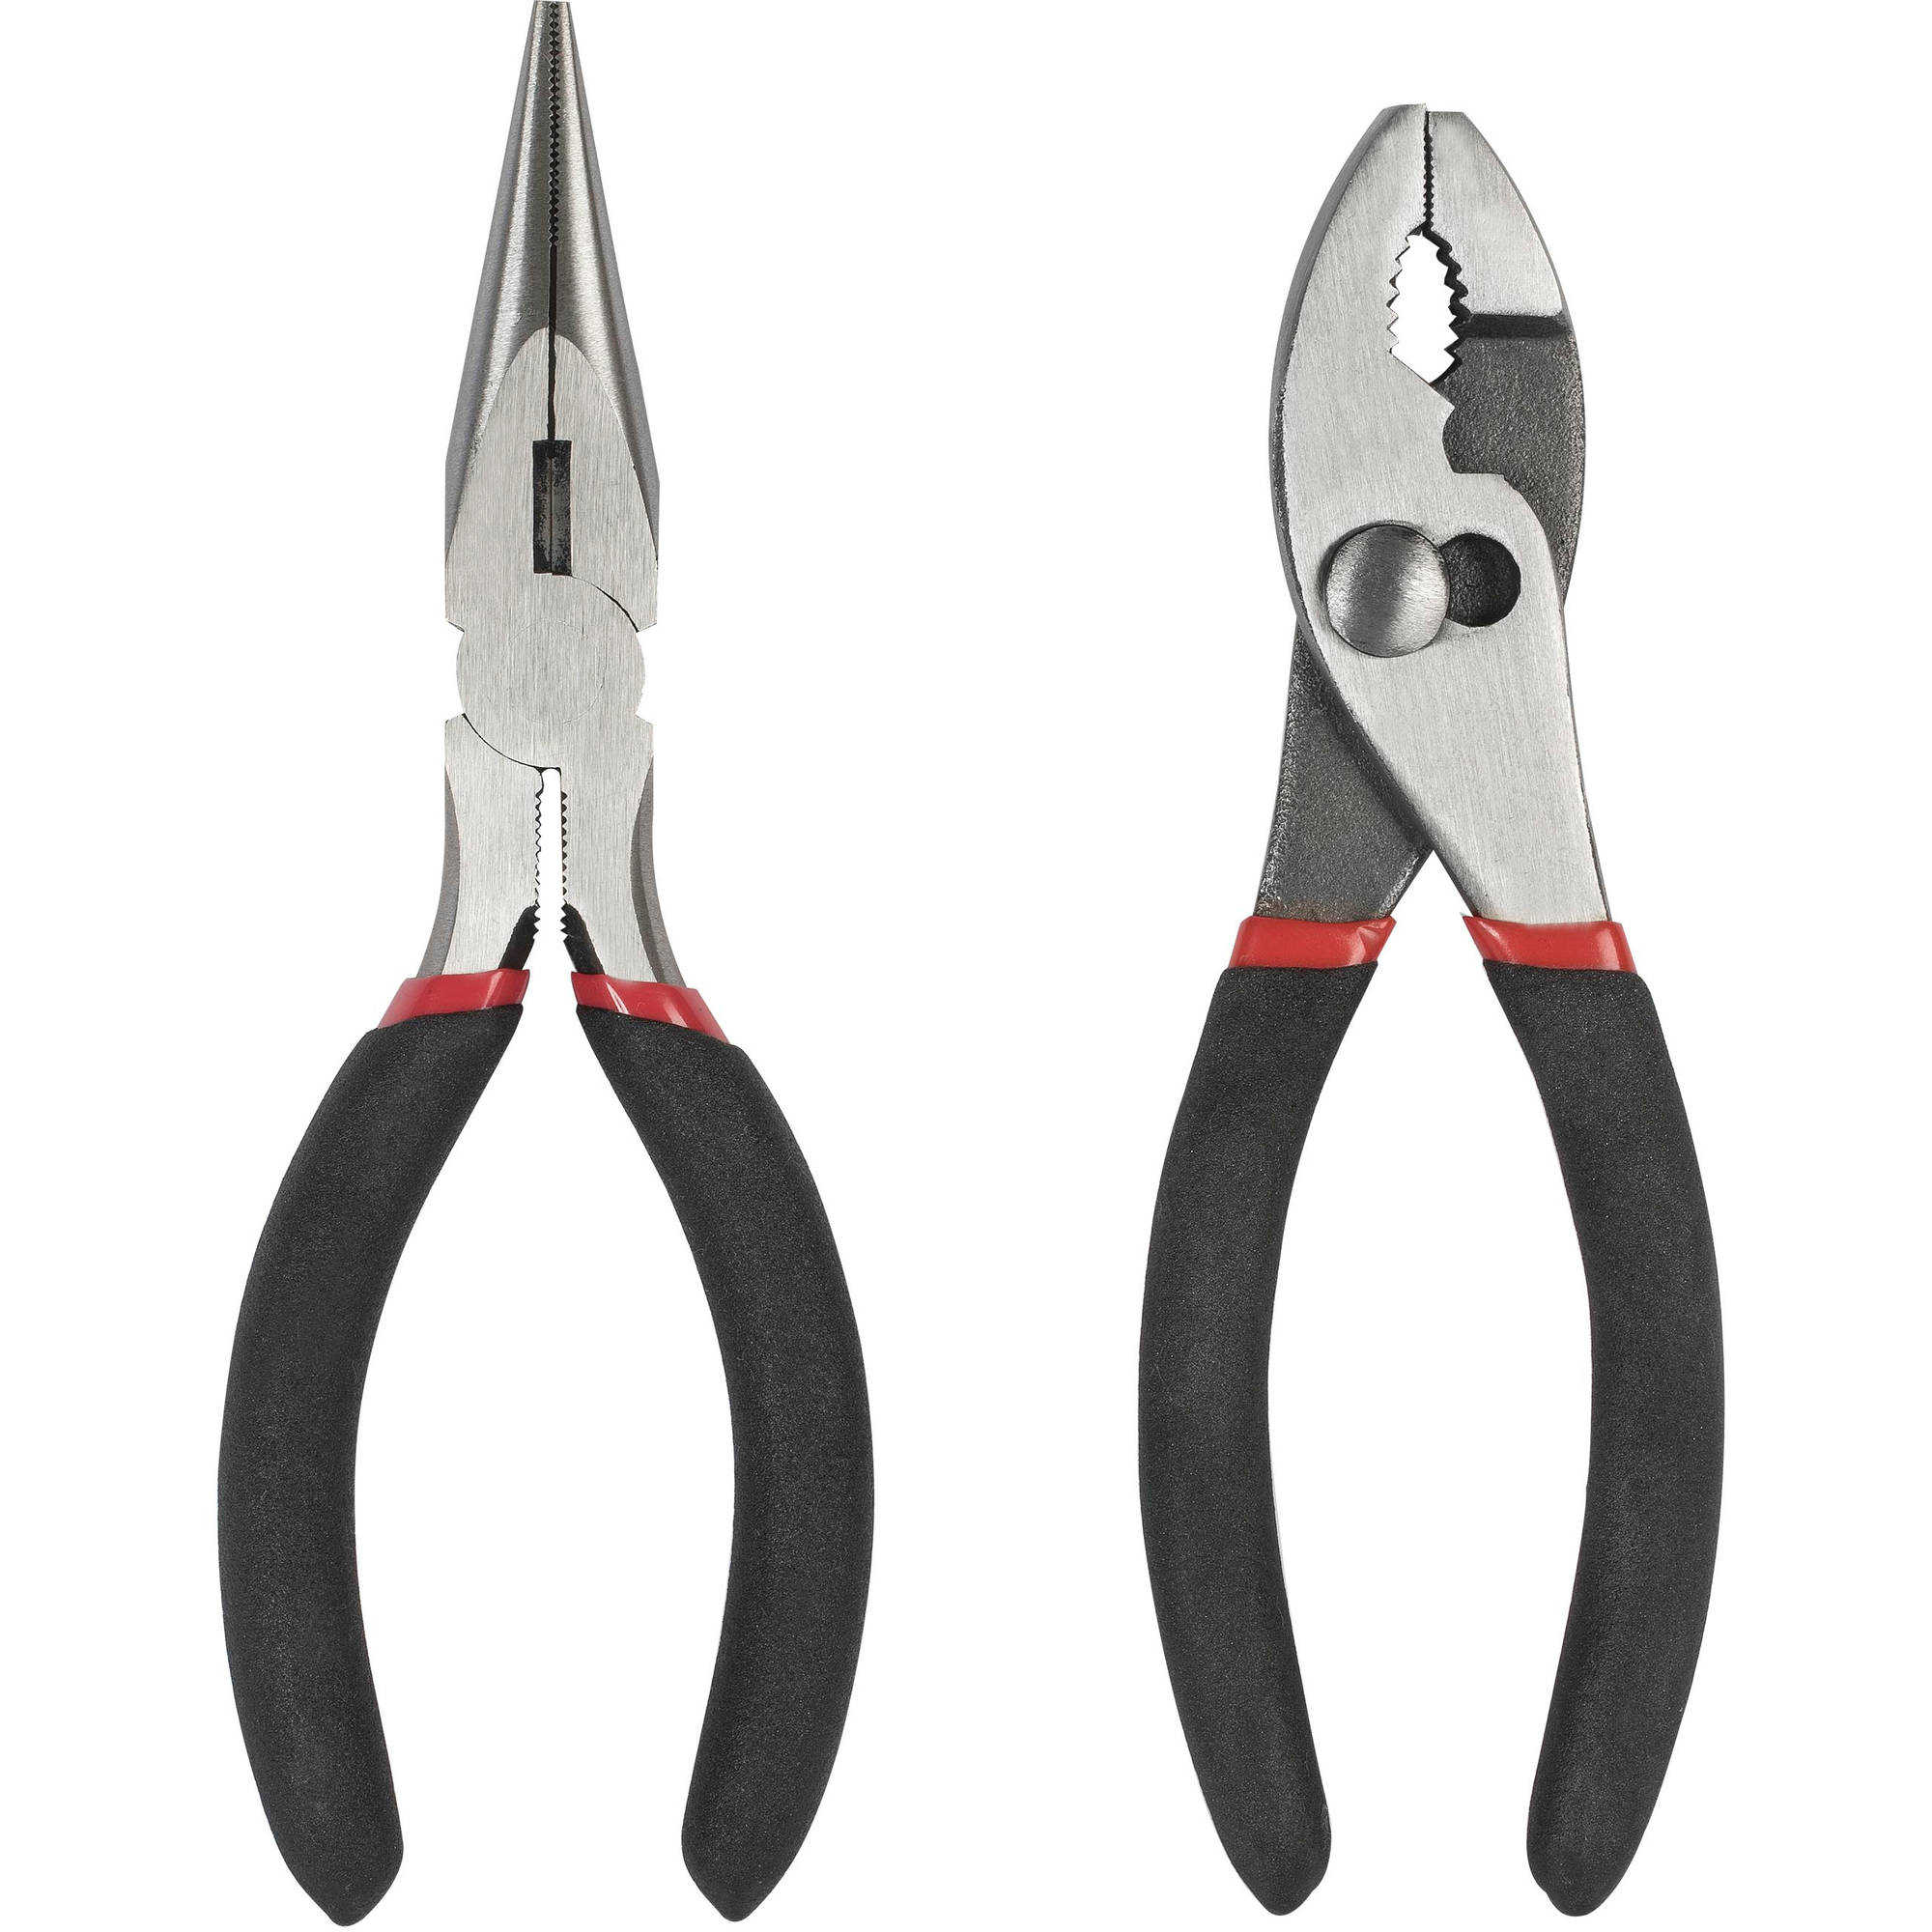 Hyper Tough 2pc Pliers Set